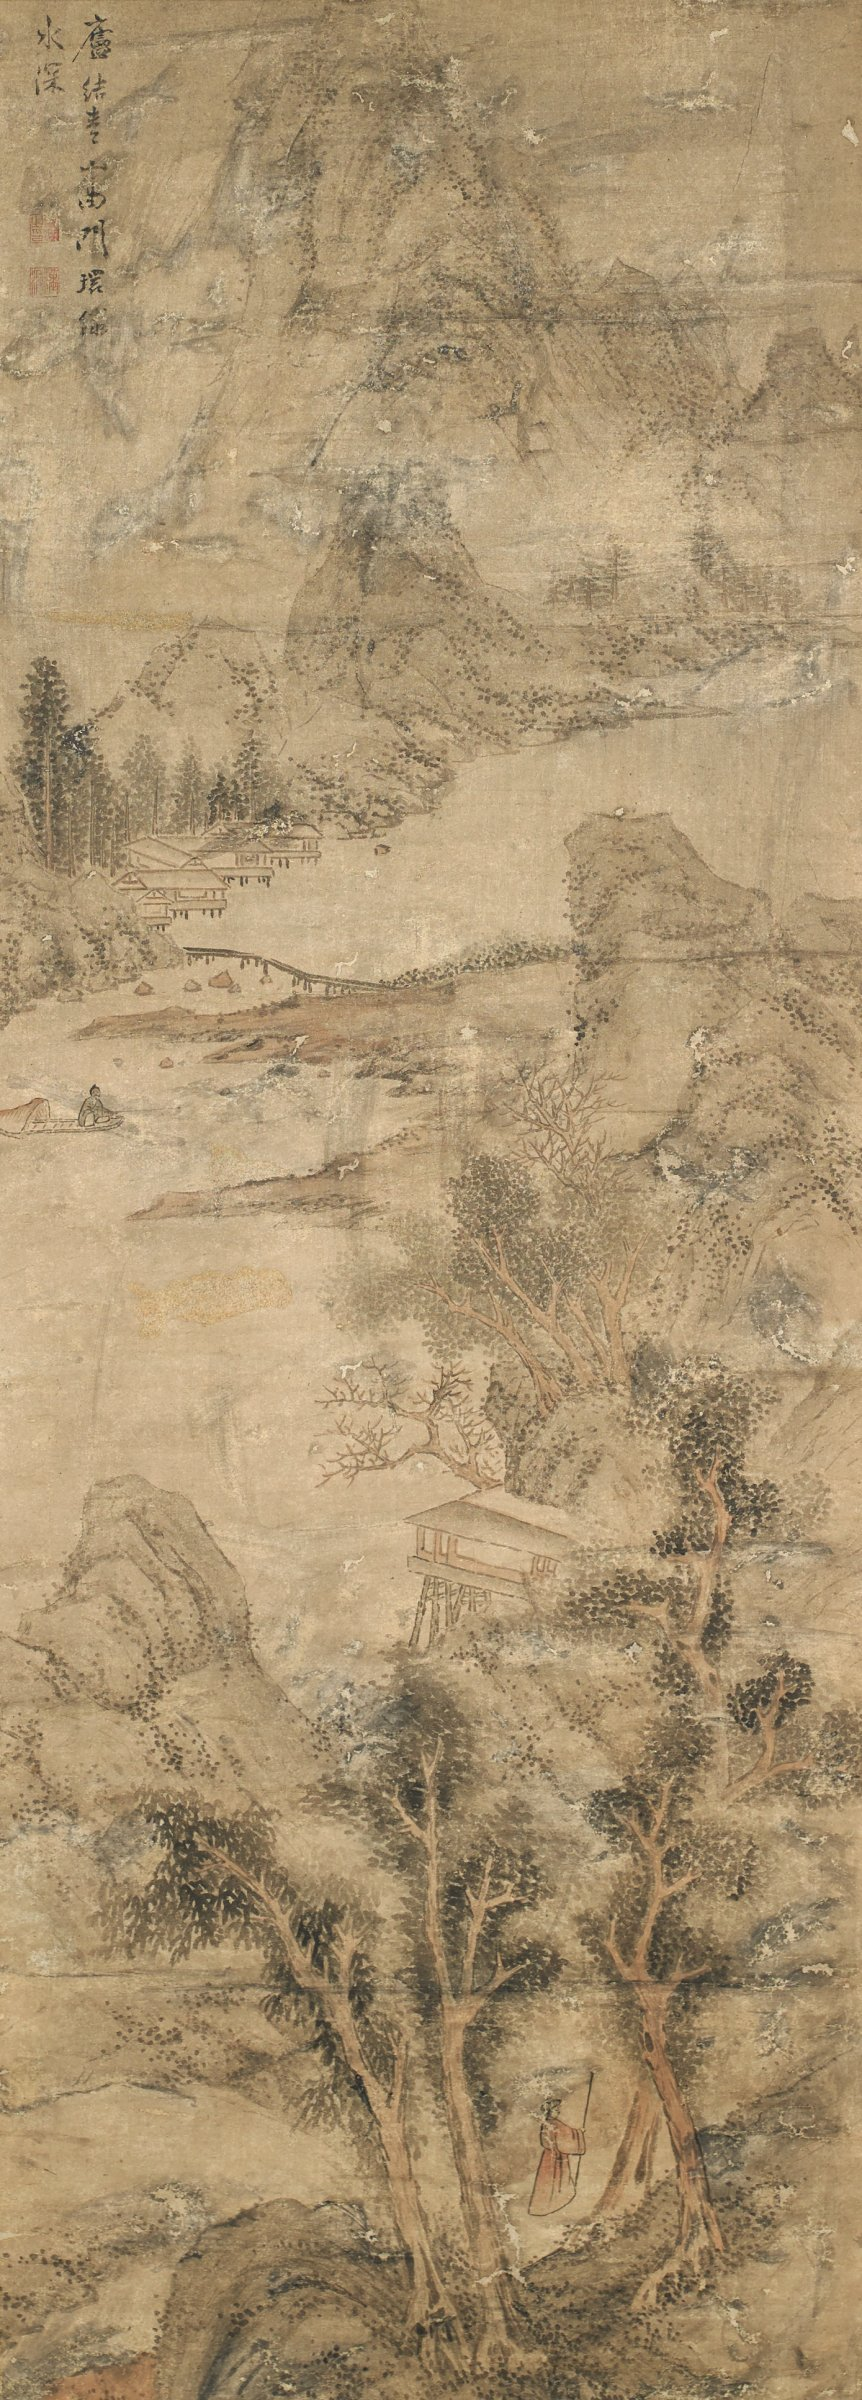 Man in red robe walks among pines along the rivers edge. Boatman in boat on river. Footbridges cross the river. Tall mountains.